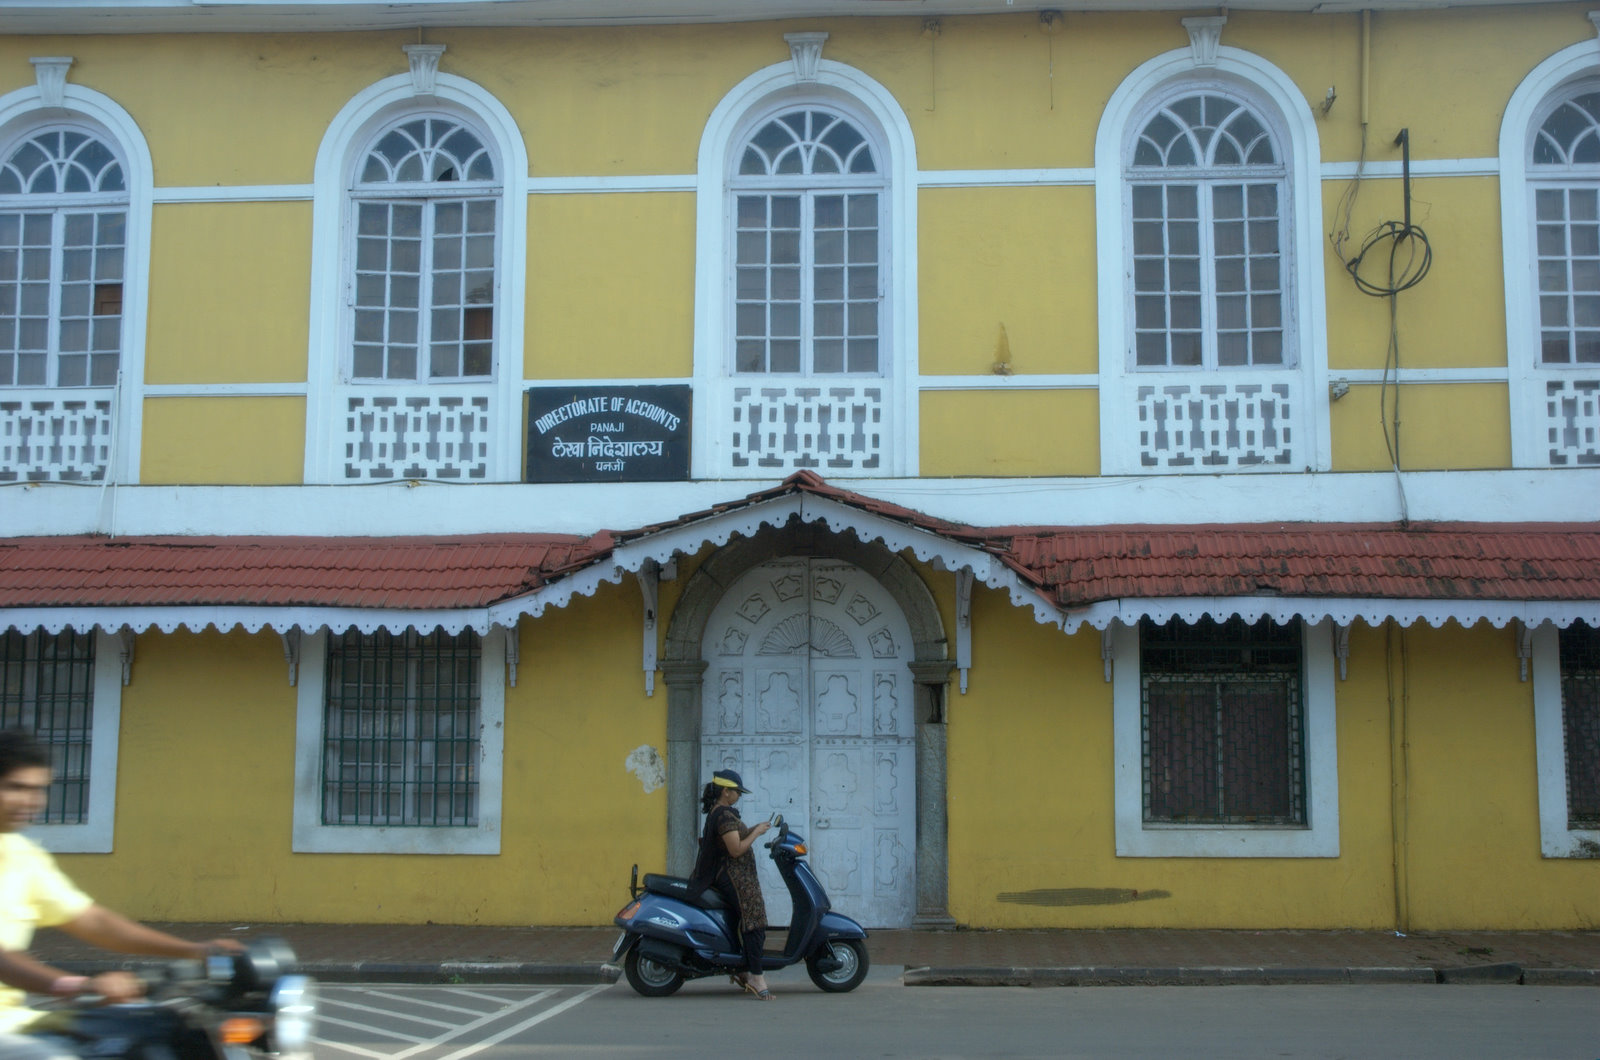 Fontainhas Is An Old Latin Quarter In The City Of Panaji